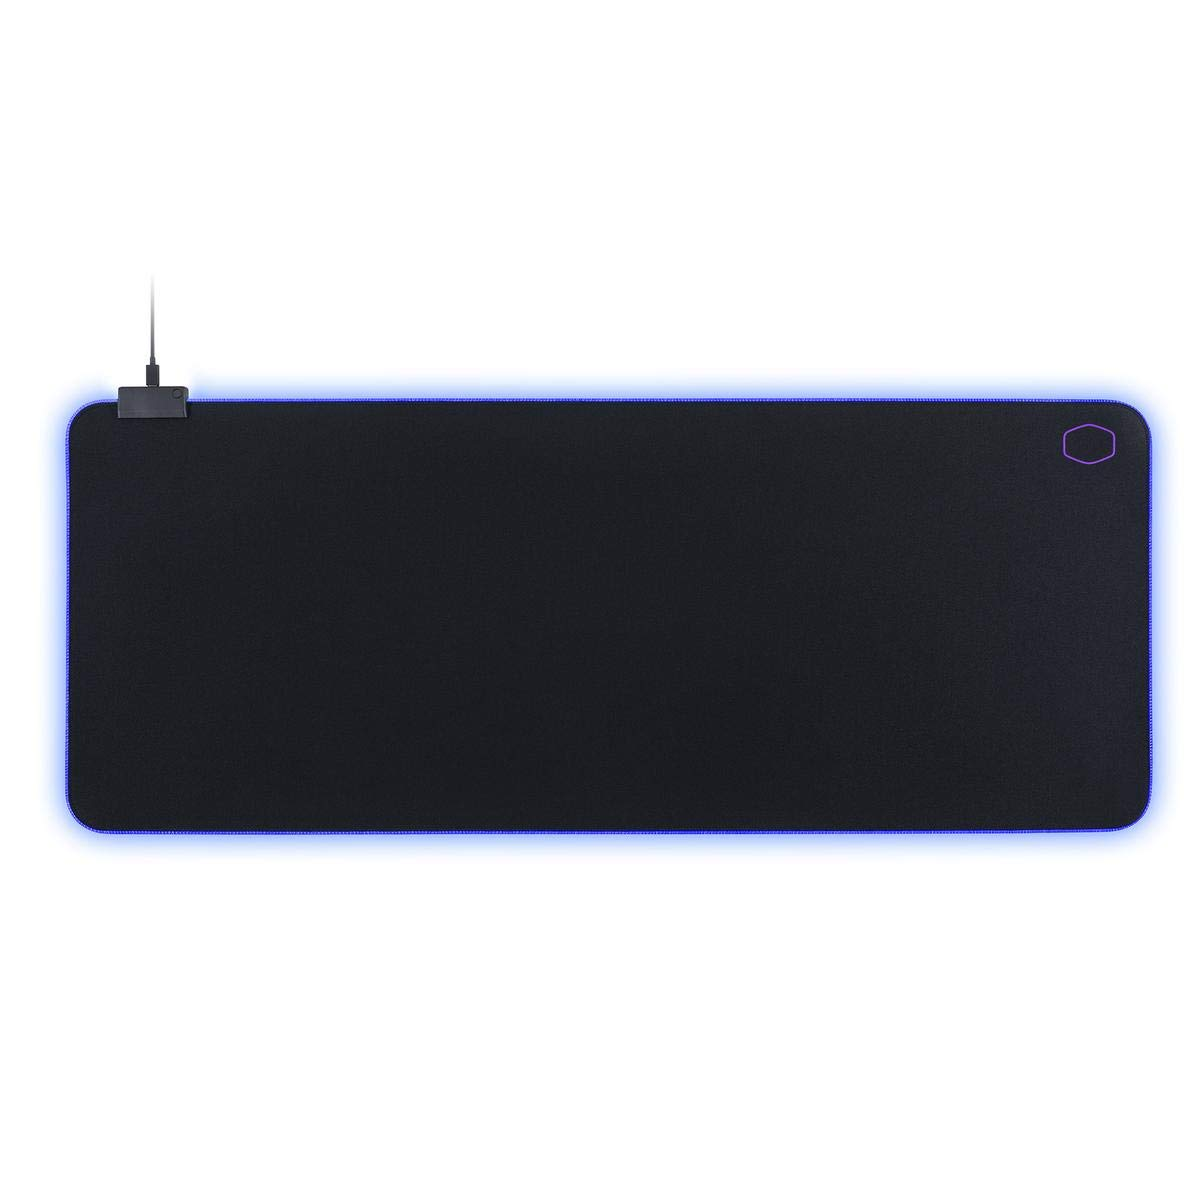 Cooler Master MasterAccessory MP750 XL Soft Mouse Pad with Water Resistant Surface and Thick RGB Borders